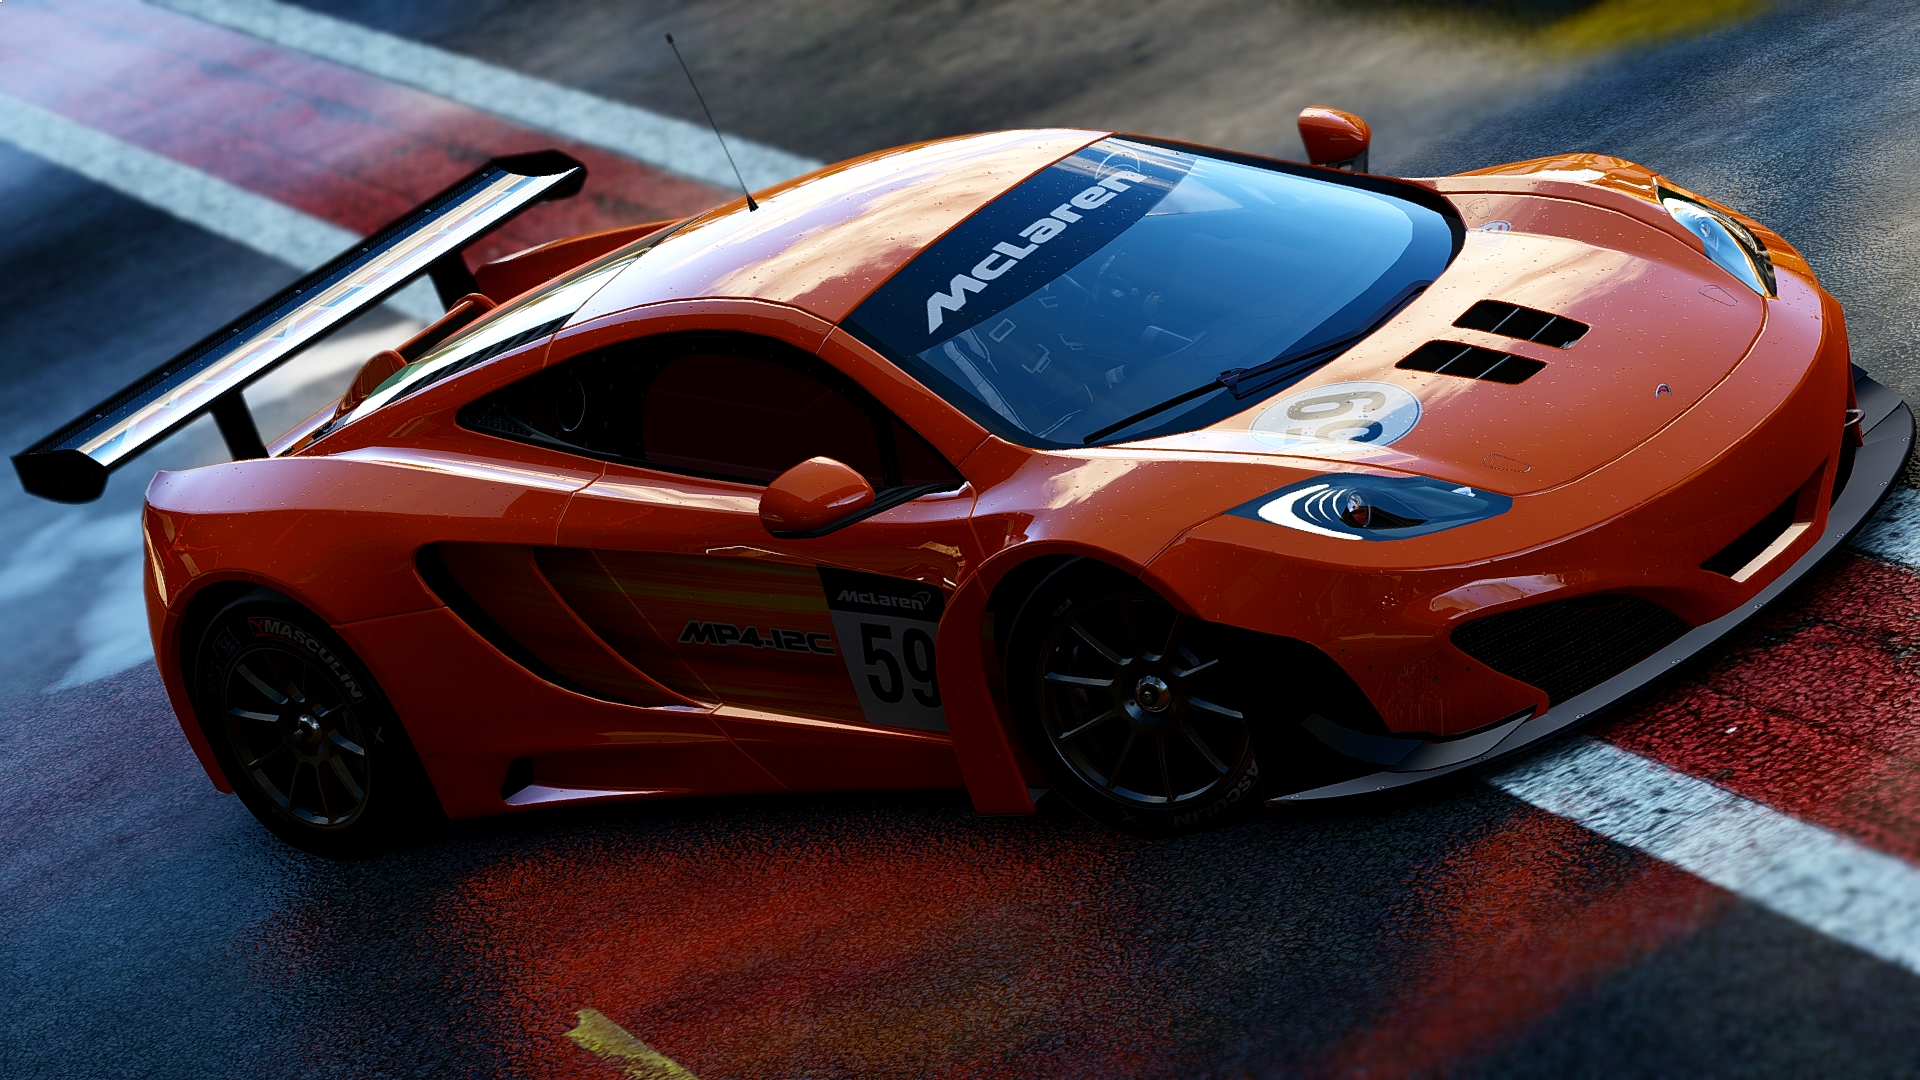 project cars trailer wallpapers video previews gallery 1920x1080